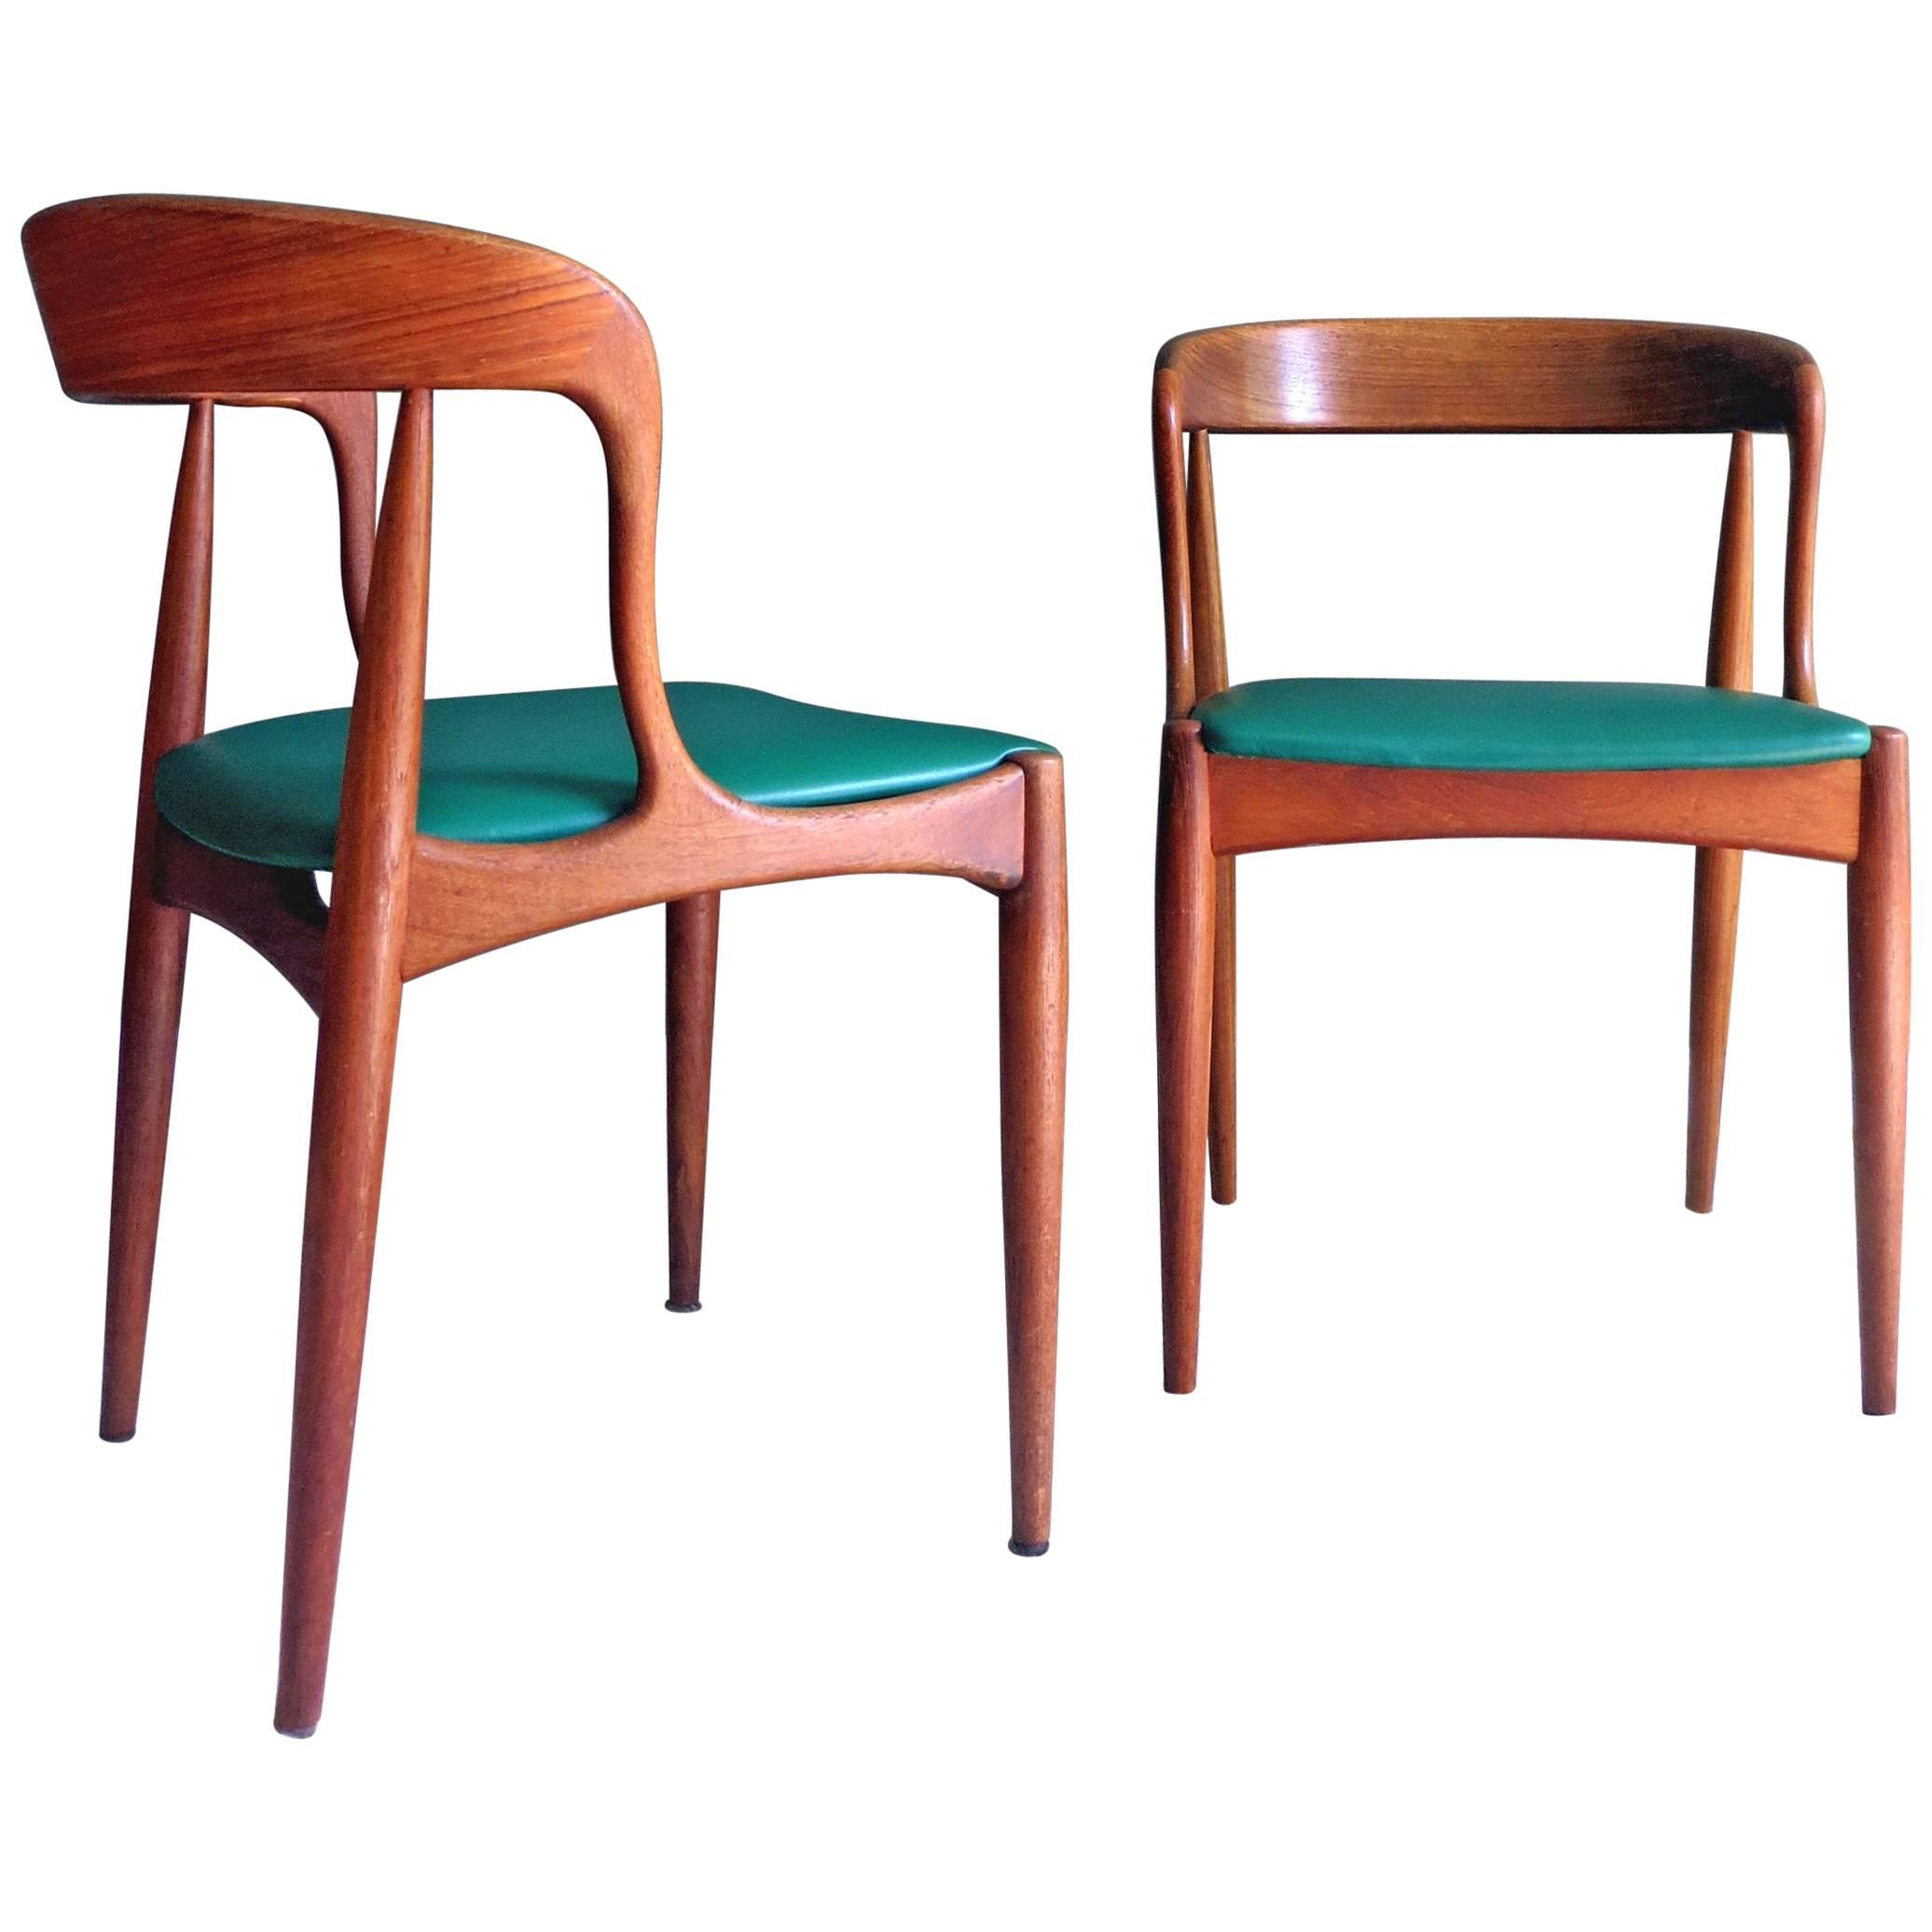 Uldum Denmark Model 16 by Johannes Andersen Dining Teak Chairs ,Set of 2,  1960s